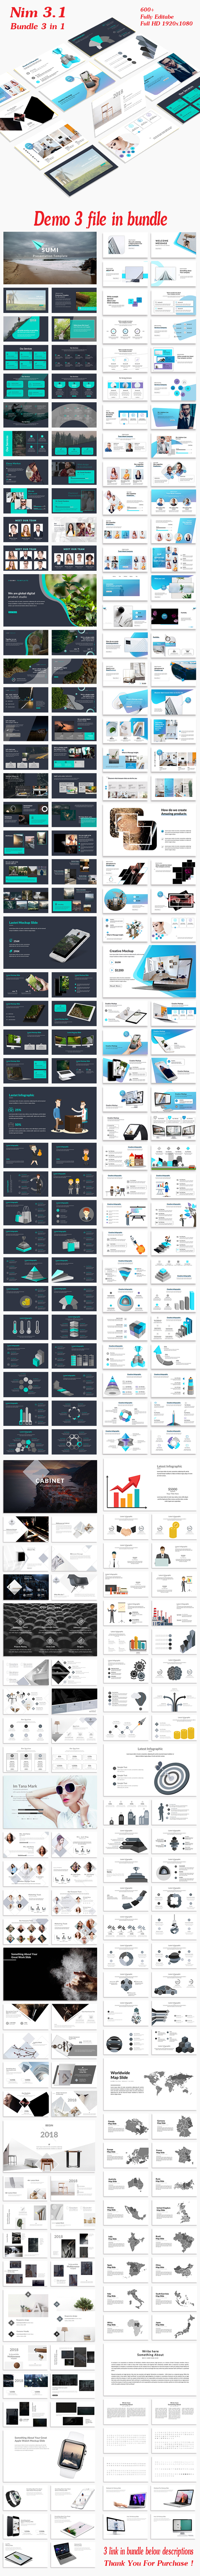 Nim 3.1 Bundle 3 in 1 PowerPoint Template - Creative PowerPoint Templates